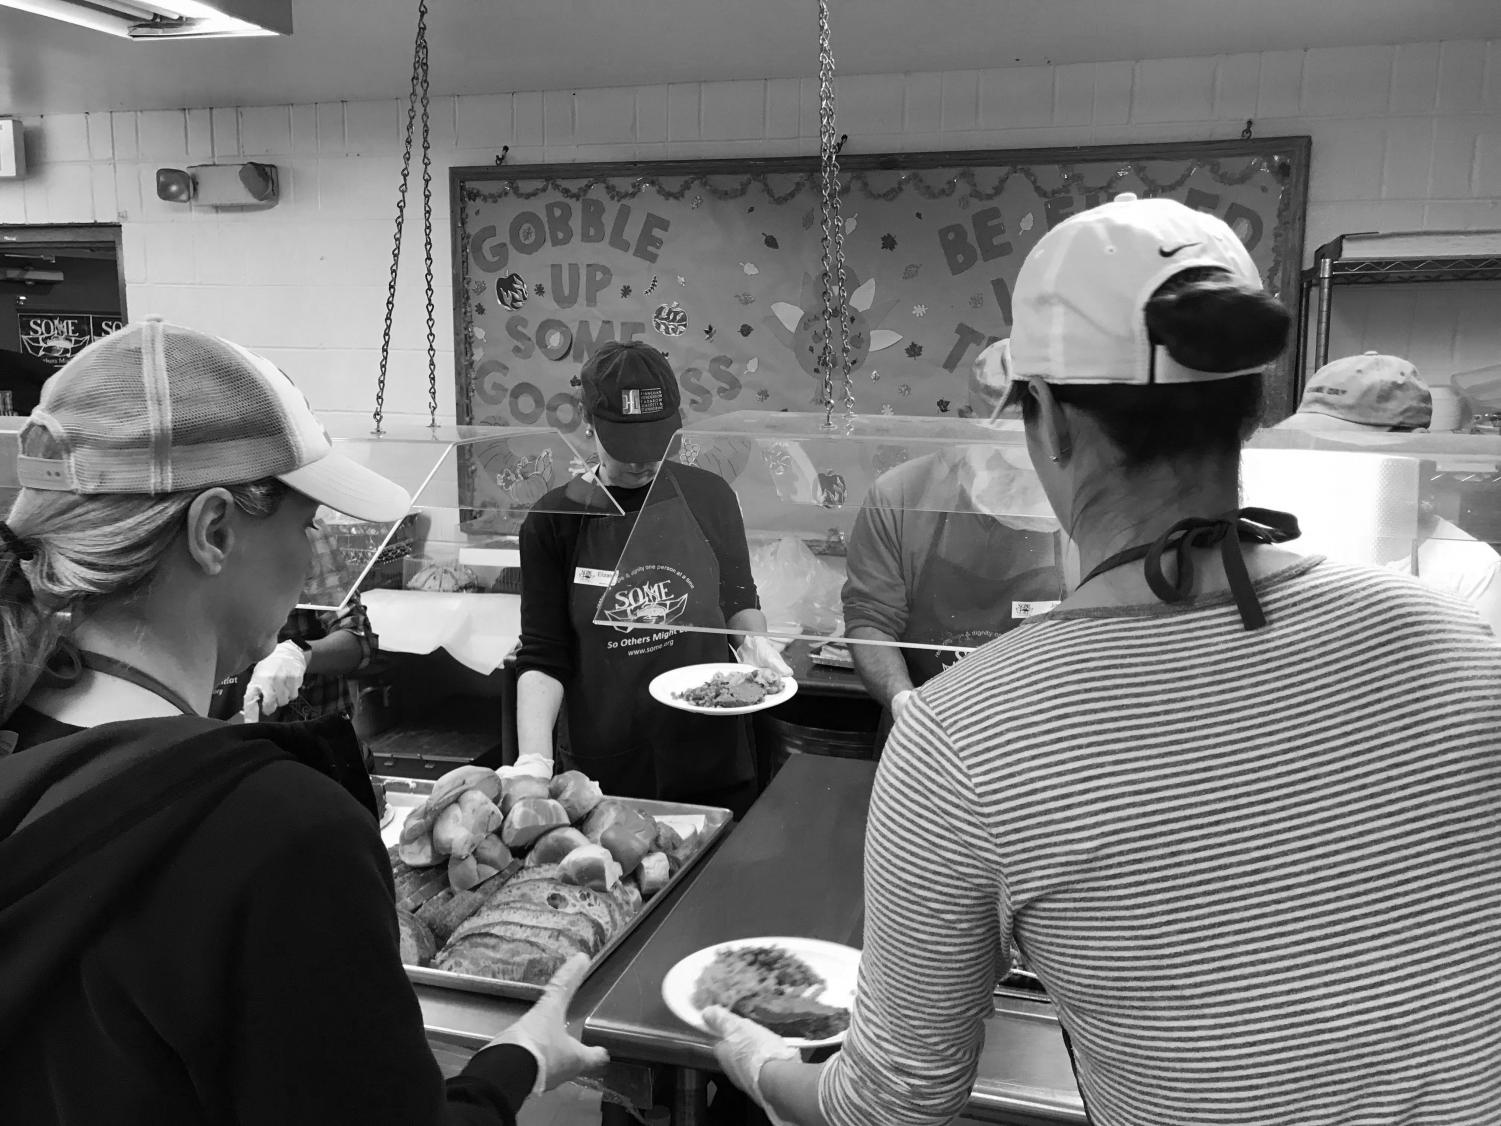 Volunteers at SOME serve breakfast from 6:30 - 9:30 and lunch from 10:15 - 1:15. They typically serve over a hundred individuals in the DC area who are experiencing poverty.